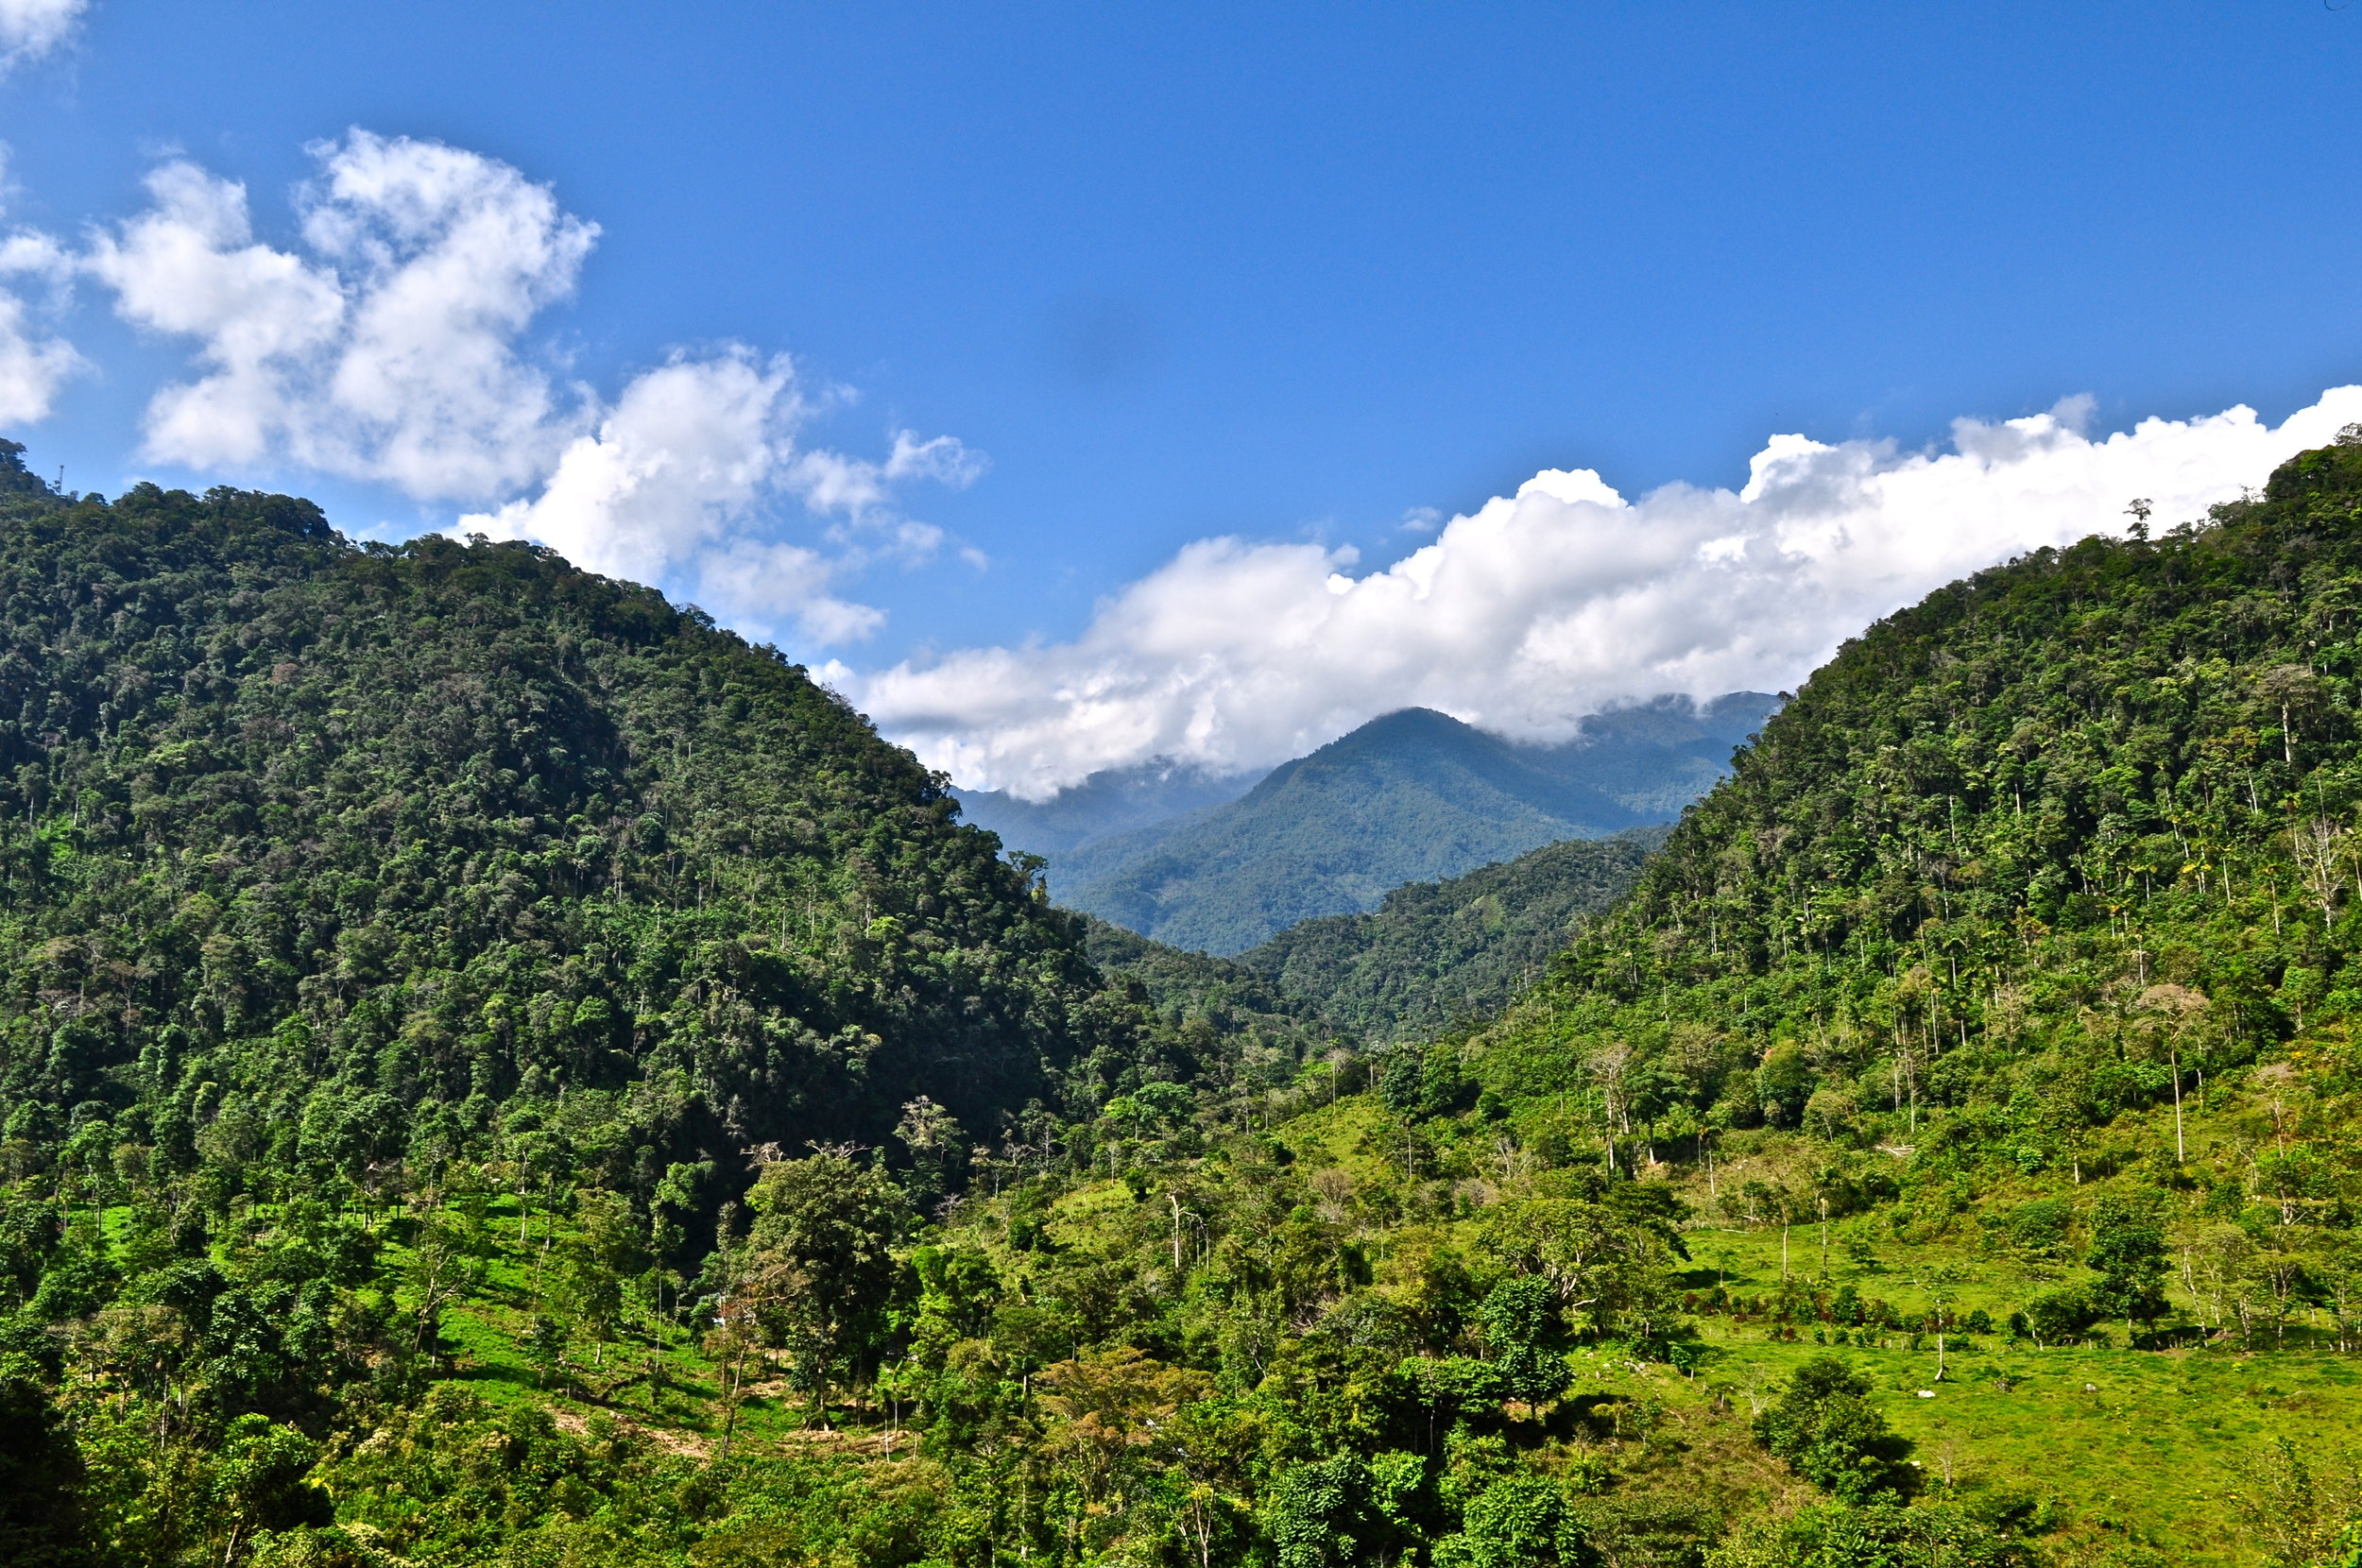 The purchase of certified carbon offsets protects forests and benefits local communities, including the Alto Mayo Protected Forest in Peru, pictured above. (© Conservation International/photo by Bailey Evans)